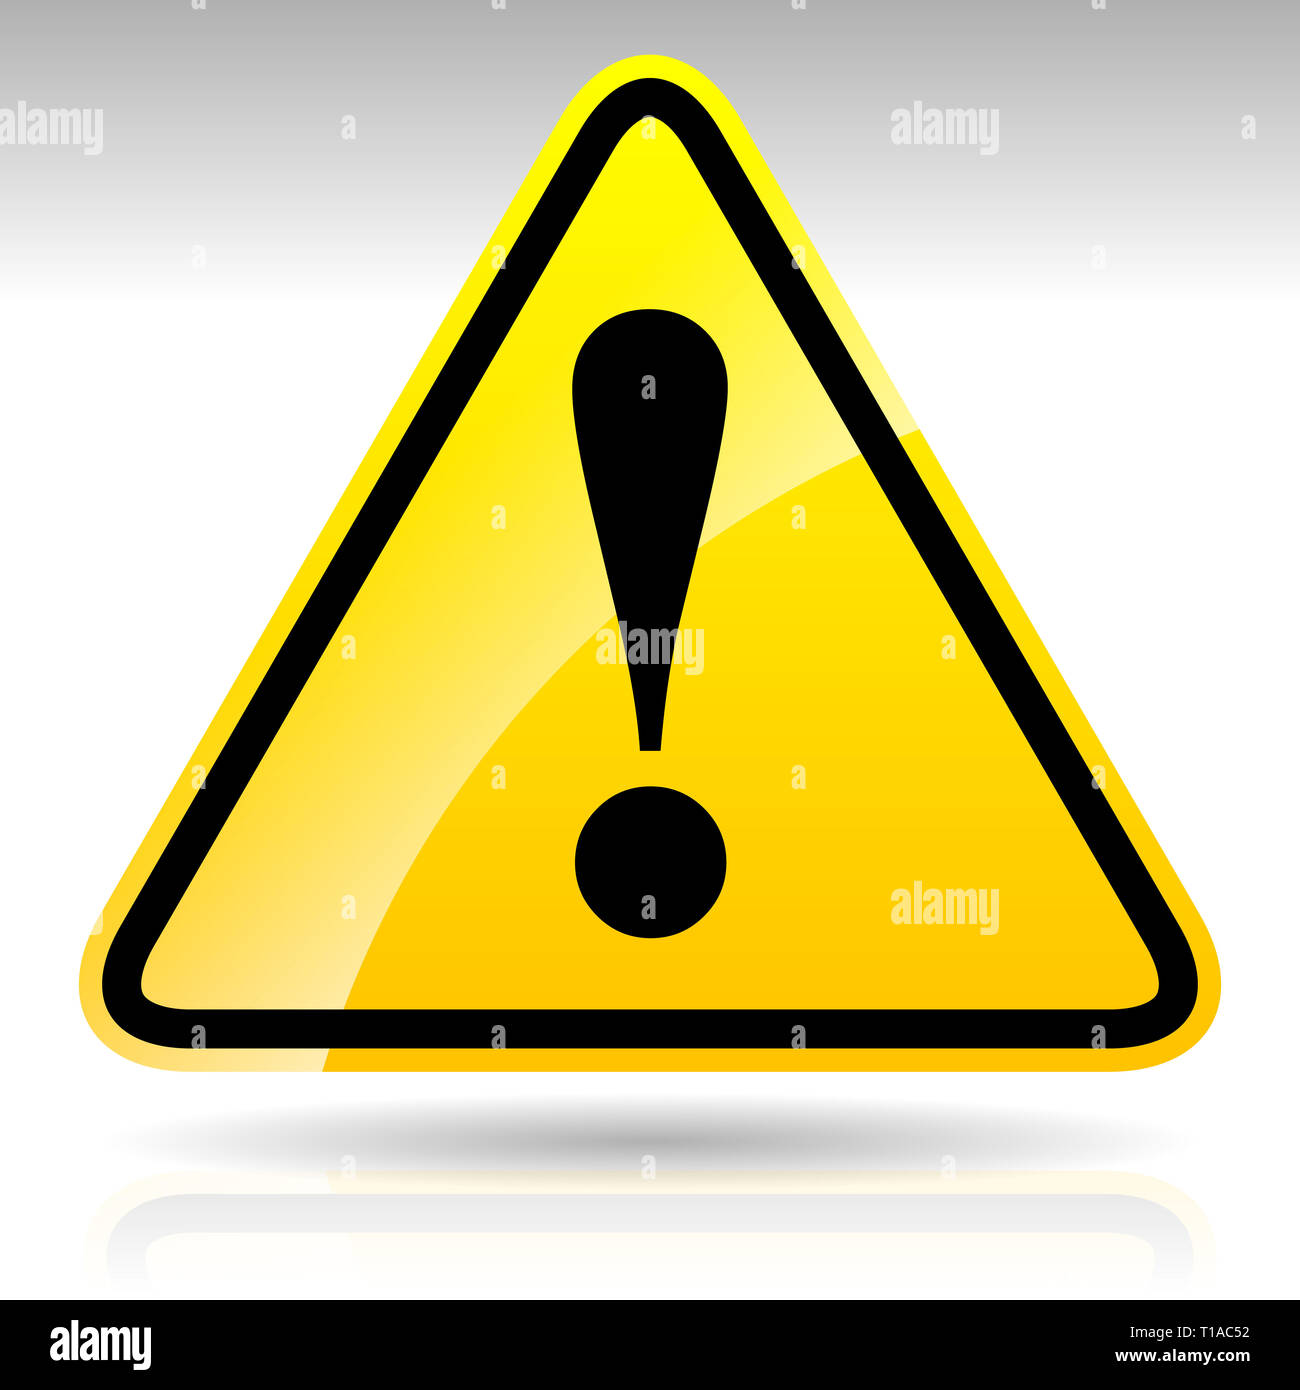 Yellow Exclamation Mark Sign - Caution, Warning Attention Sign, Eps 10 Vector Illustration - Stock Image